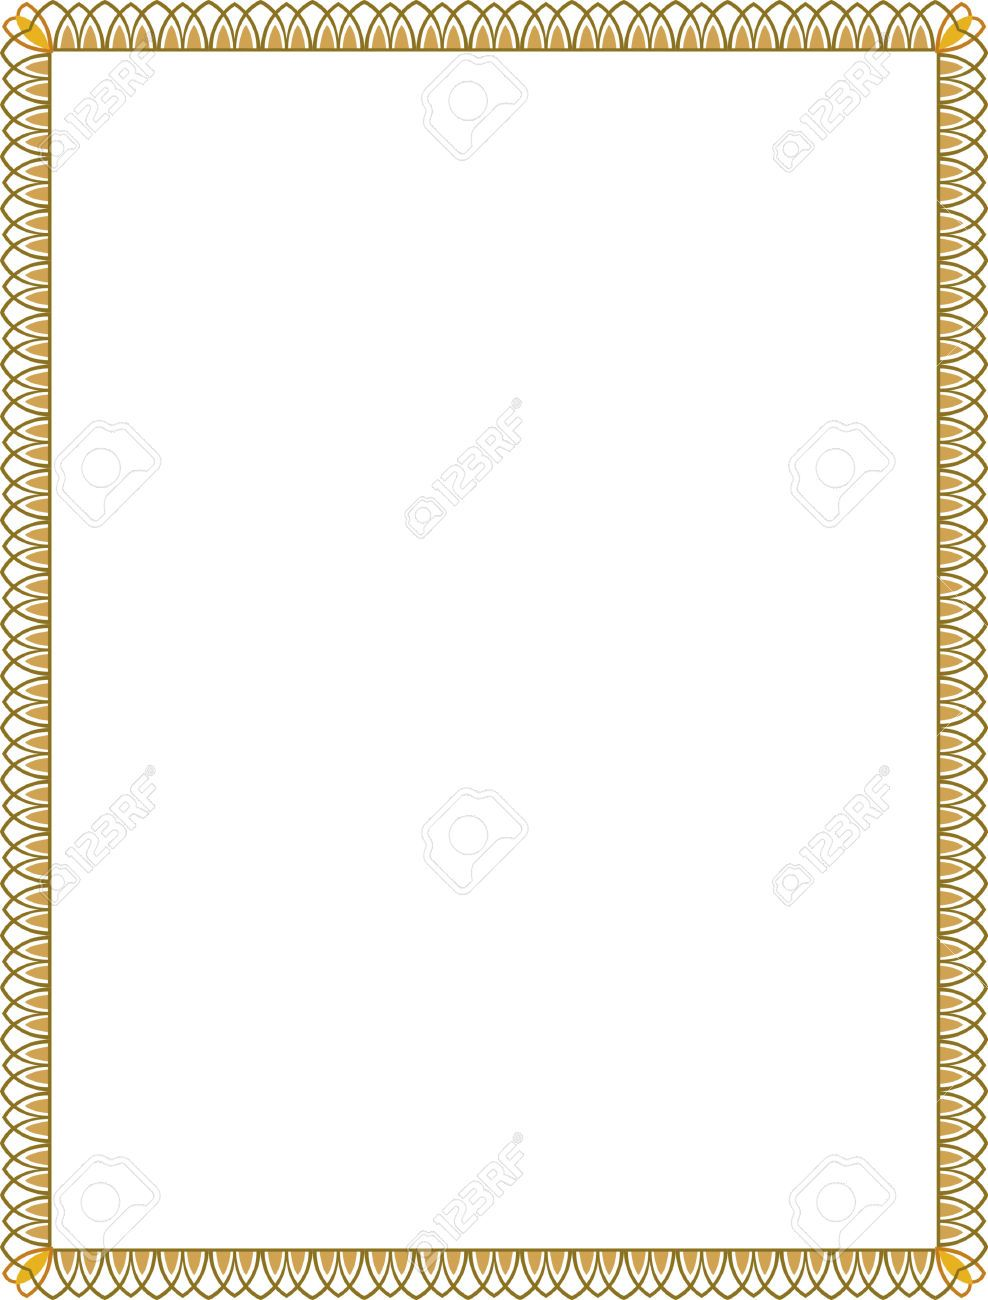 Image result for thin certificate borders Page borders Pinterest